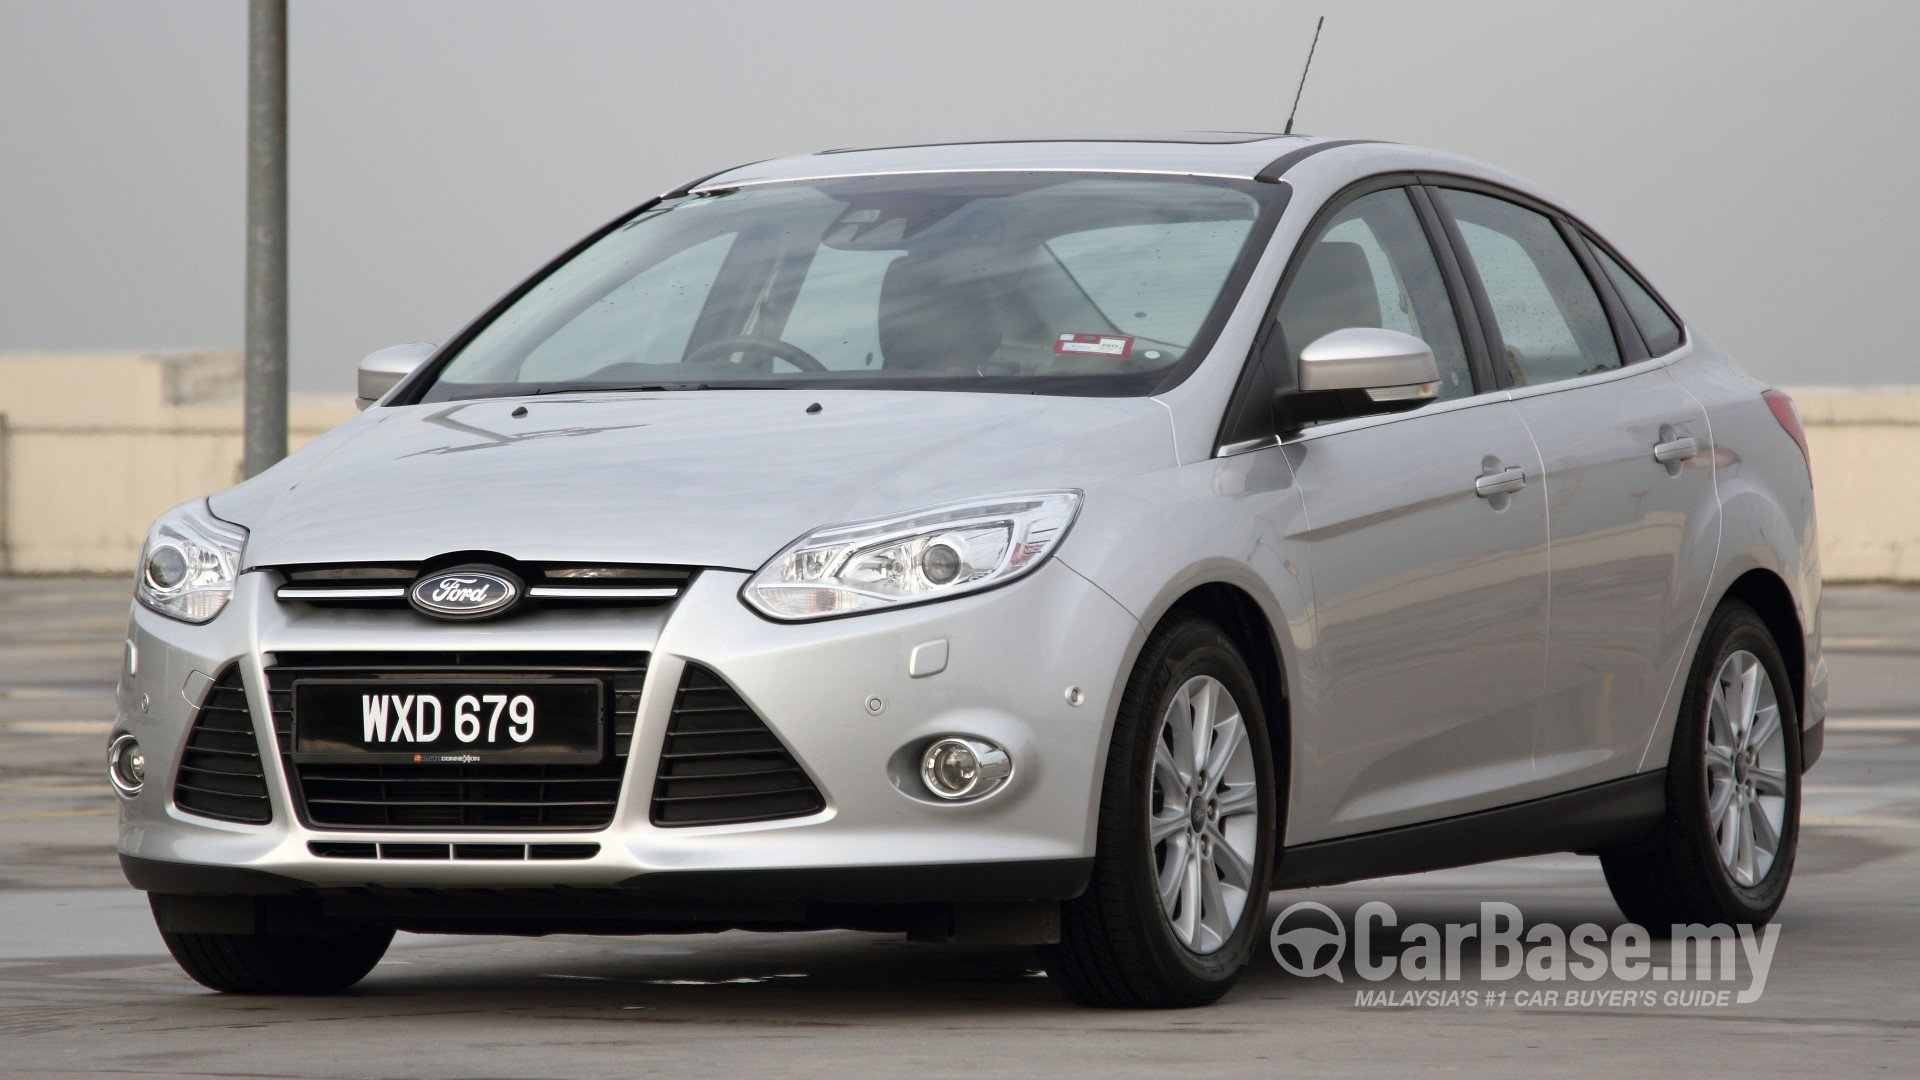 Ford Focus Sedan Mk3 2012 Exterior Image 7940 In Malaysia Reviews Specs Prices